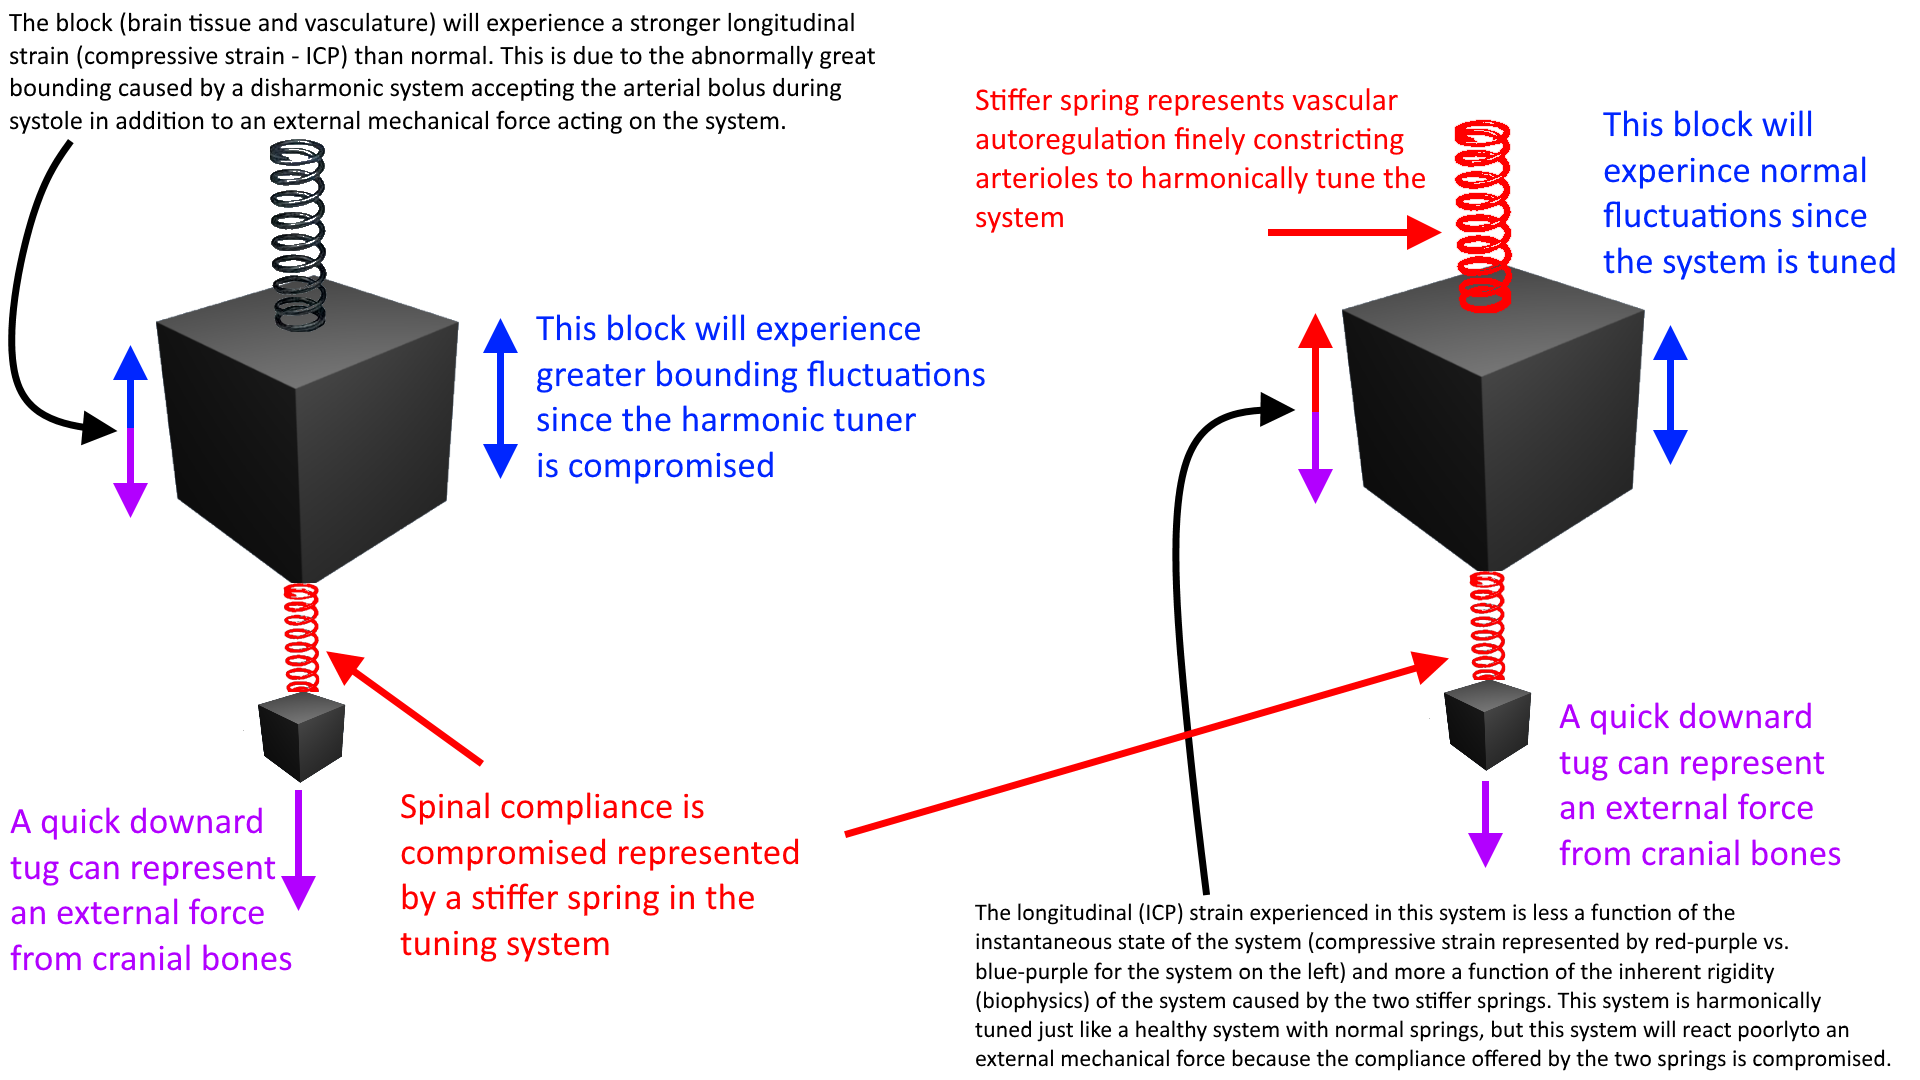 csf system harmonic tuner compromised